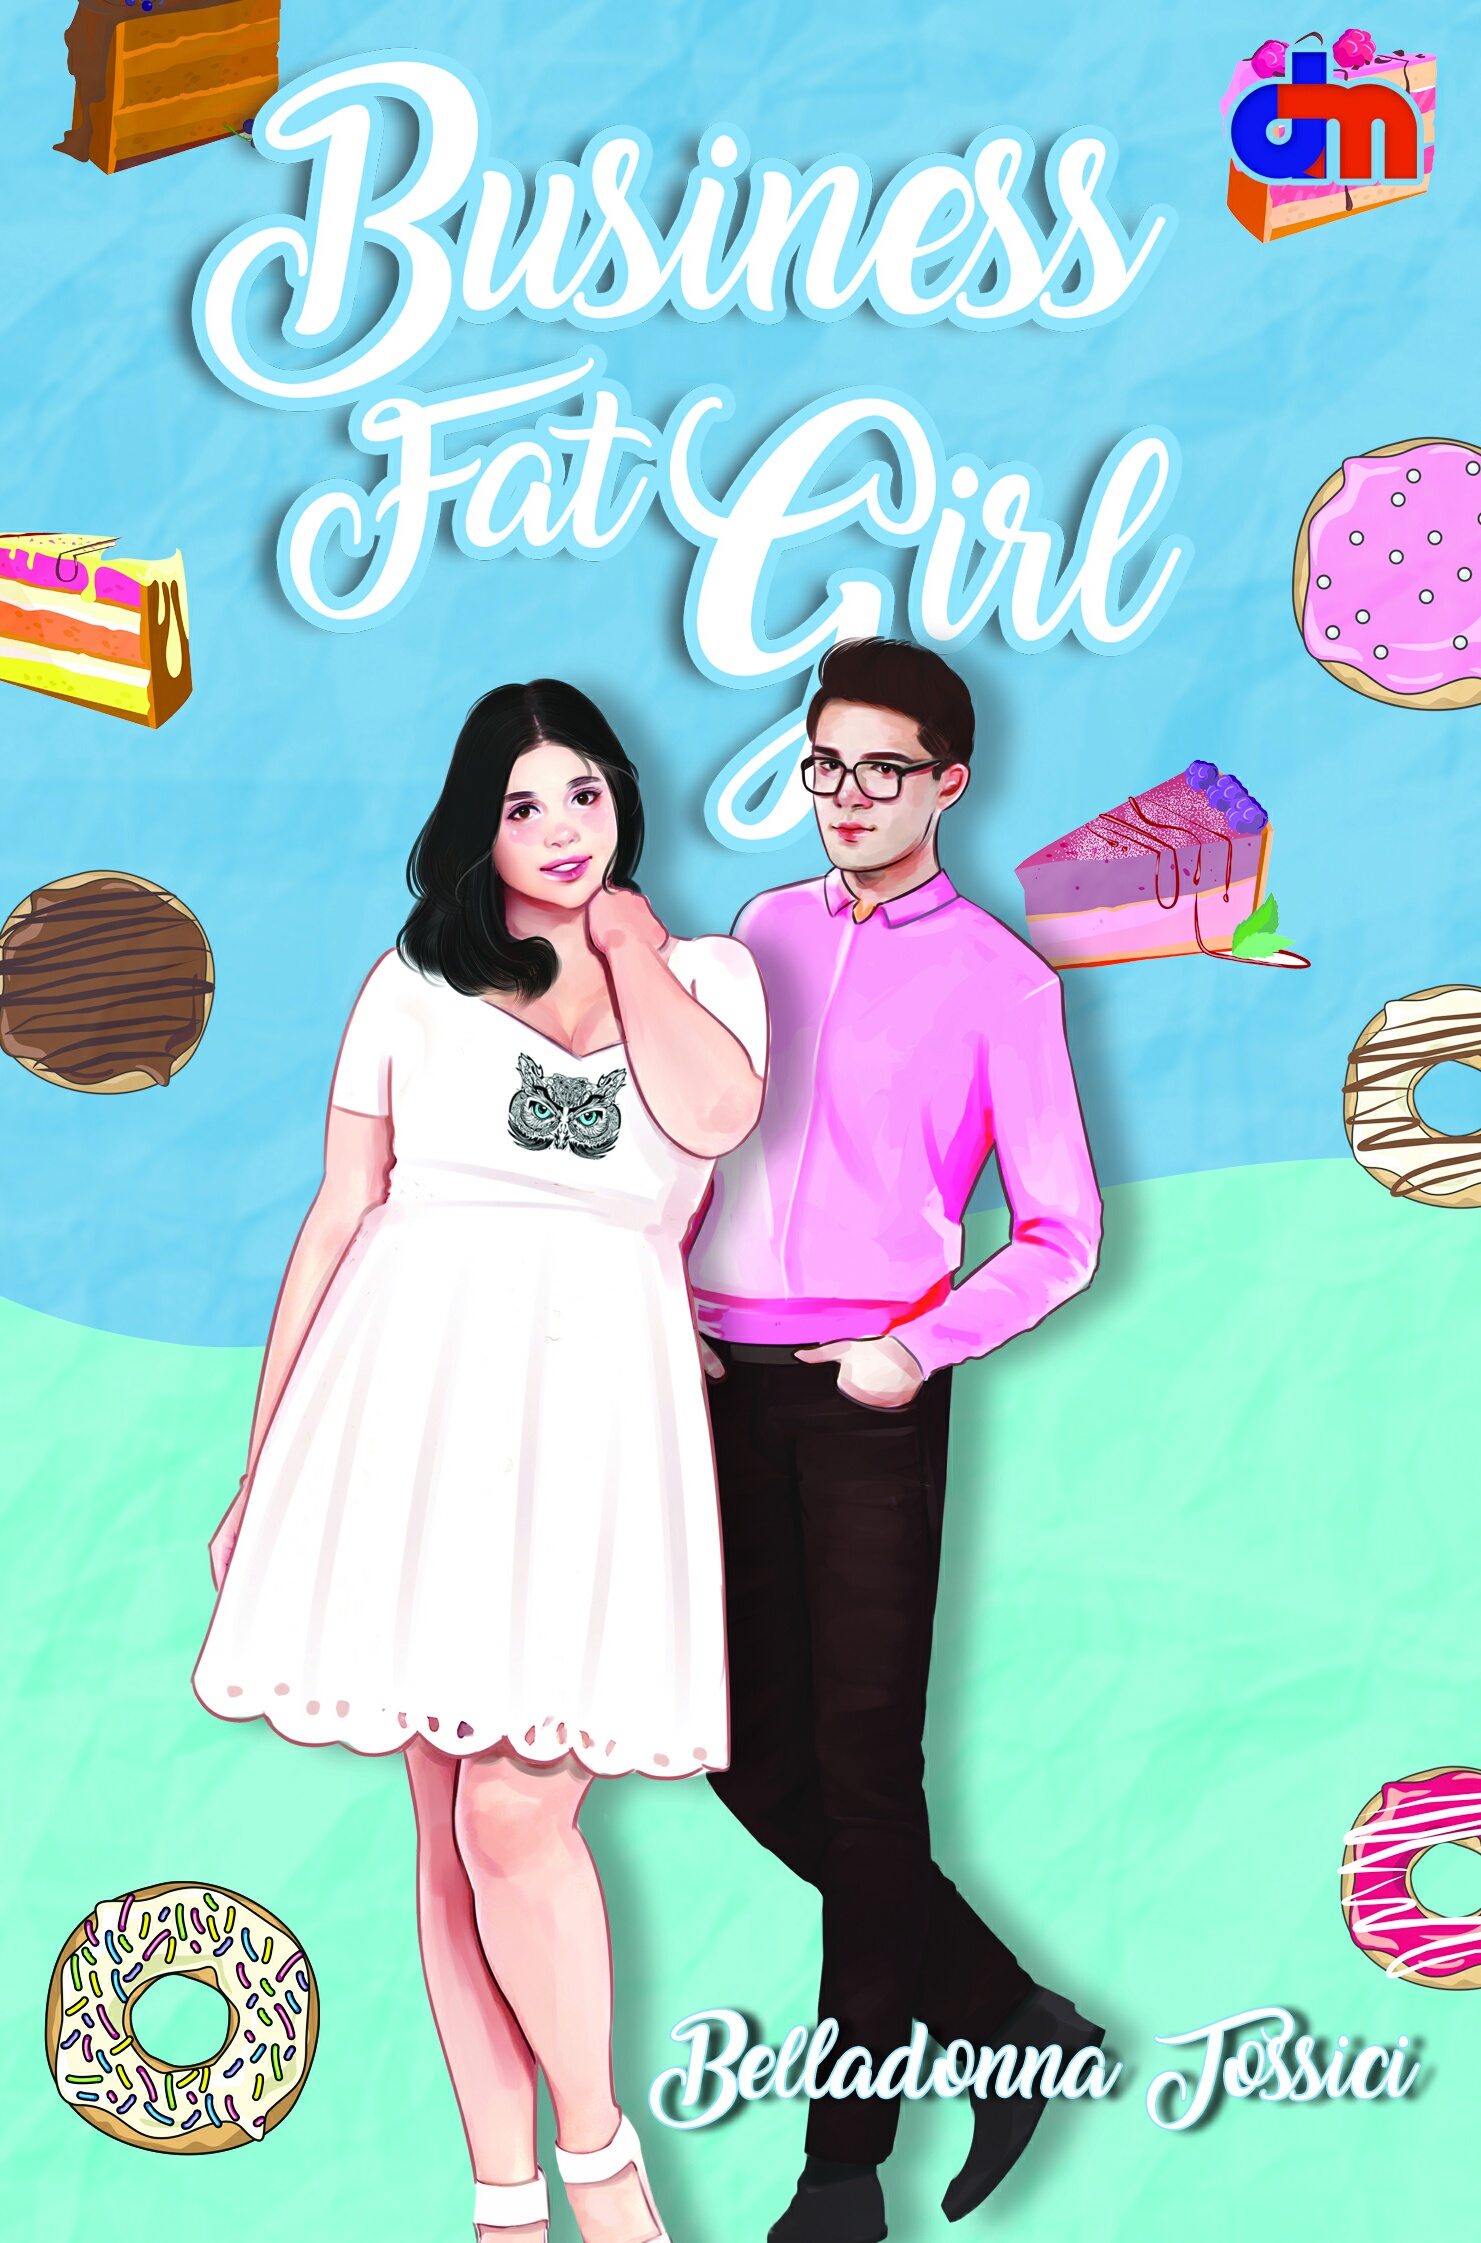 Business Fat Girl by Belladonna Tossici